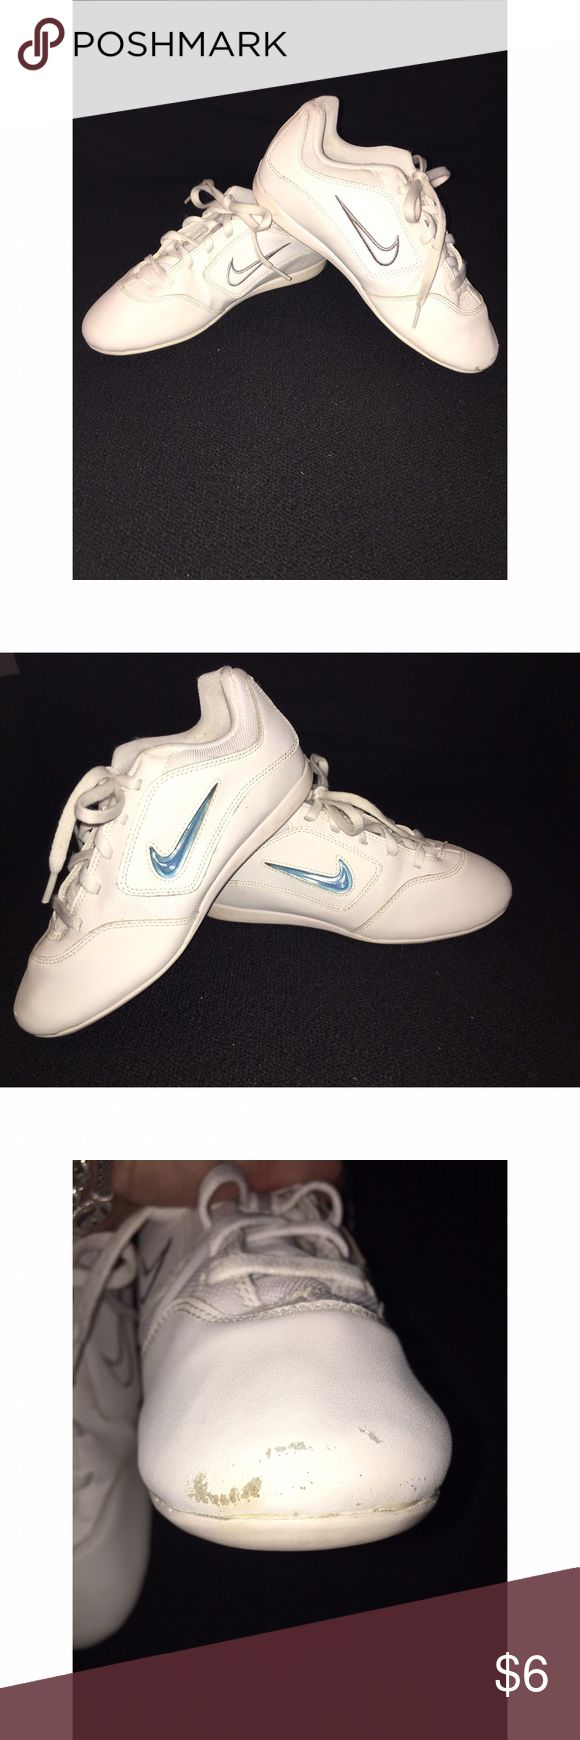 Nike Youth Cheer Shoes Sz 3 Preowned decent condition - price reflects!!! Shoes are in great shape EXCEPT for the front left toe- there are scuffs- you may be able to cover or can use for practice shoes. Sz 3youth. Blue removable swish plaquard can be interchanged(I believe you can order new plaquards to coordinate with your school colors). Cleaning out my daughters closet to raise funds for her college education! Please ask any and all questions prior to purchase. Nike Shoes Sneakers